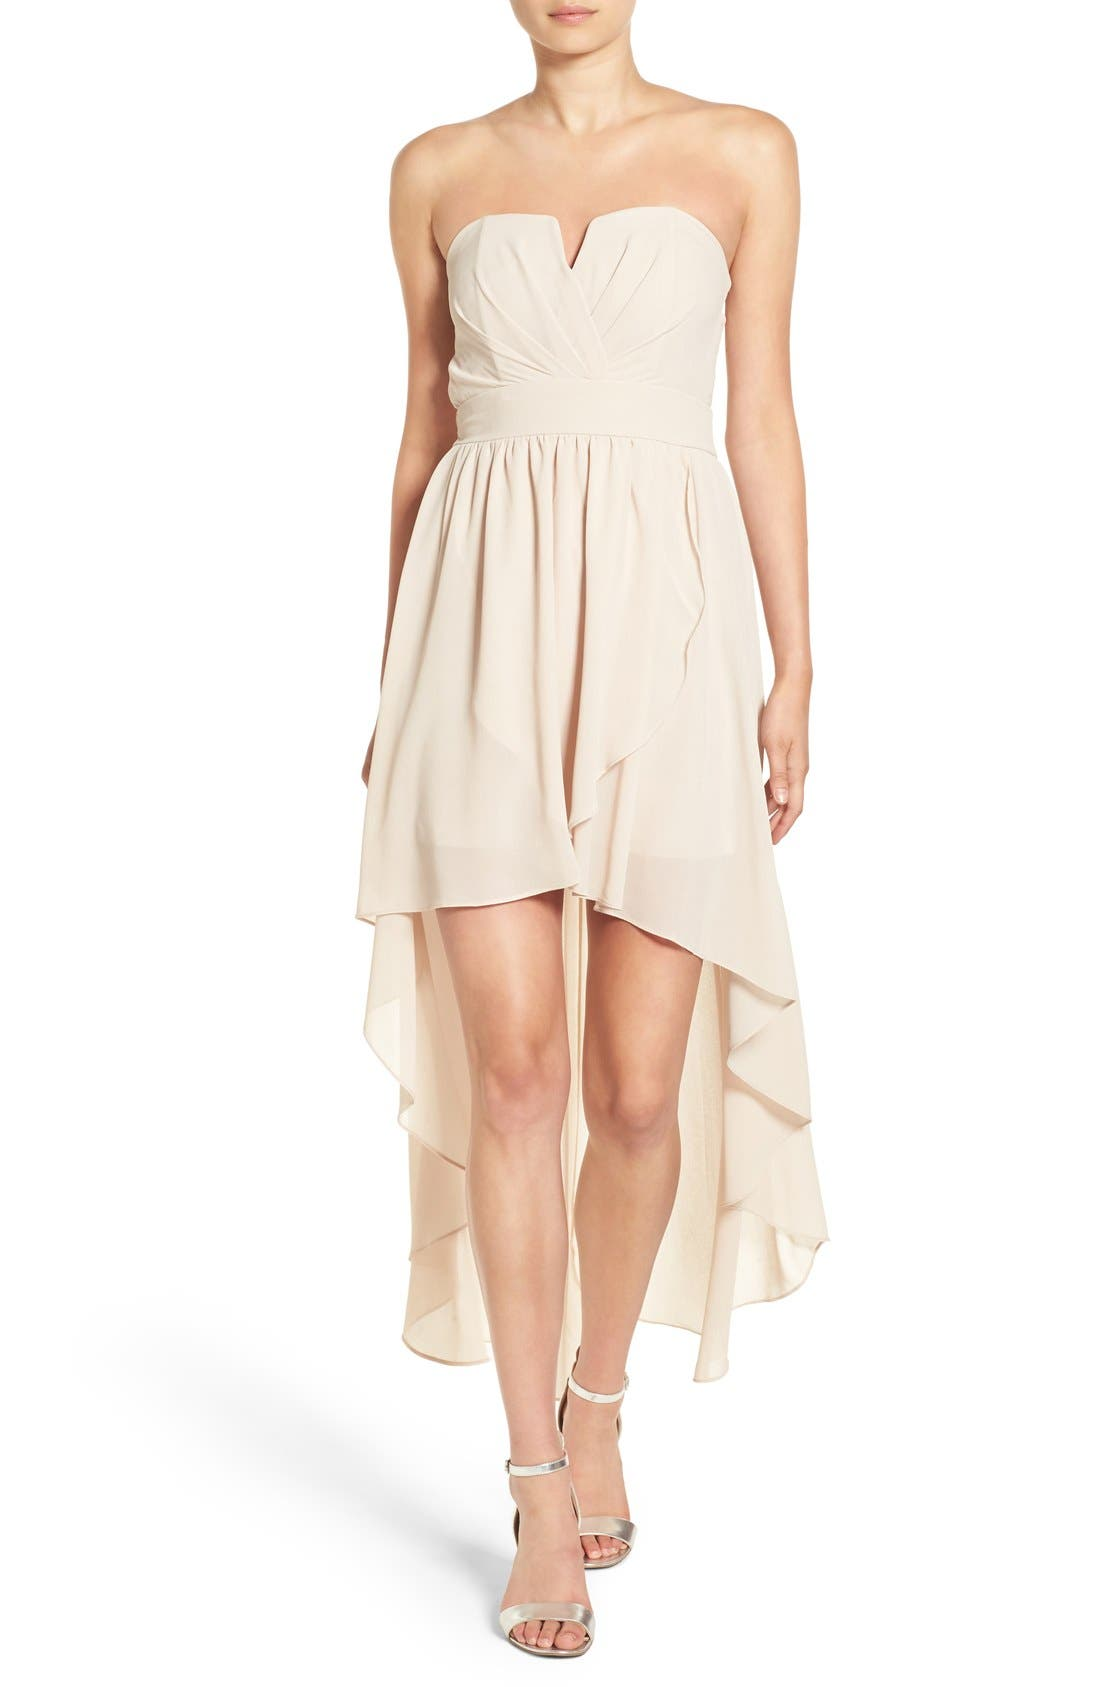 Alternate Image 1 Selected - TFNC 'Thalia' Strapless High/Low Dress